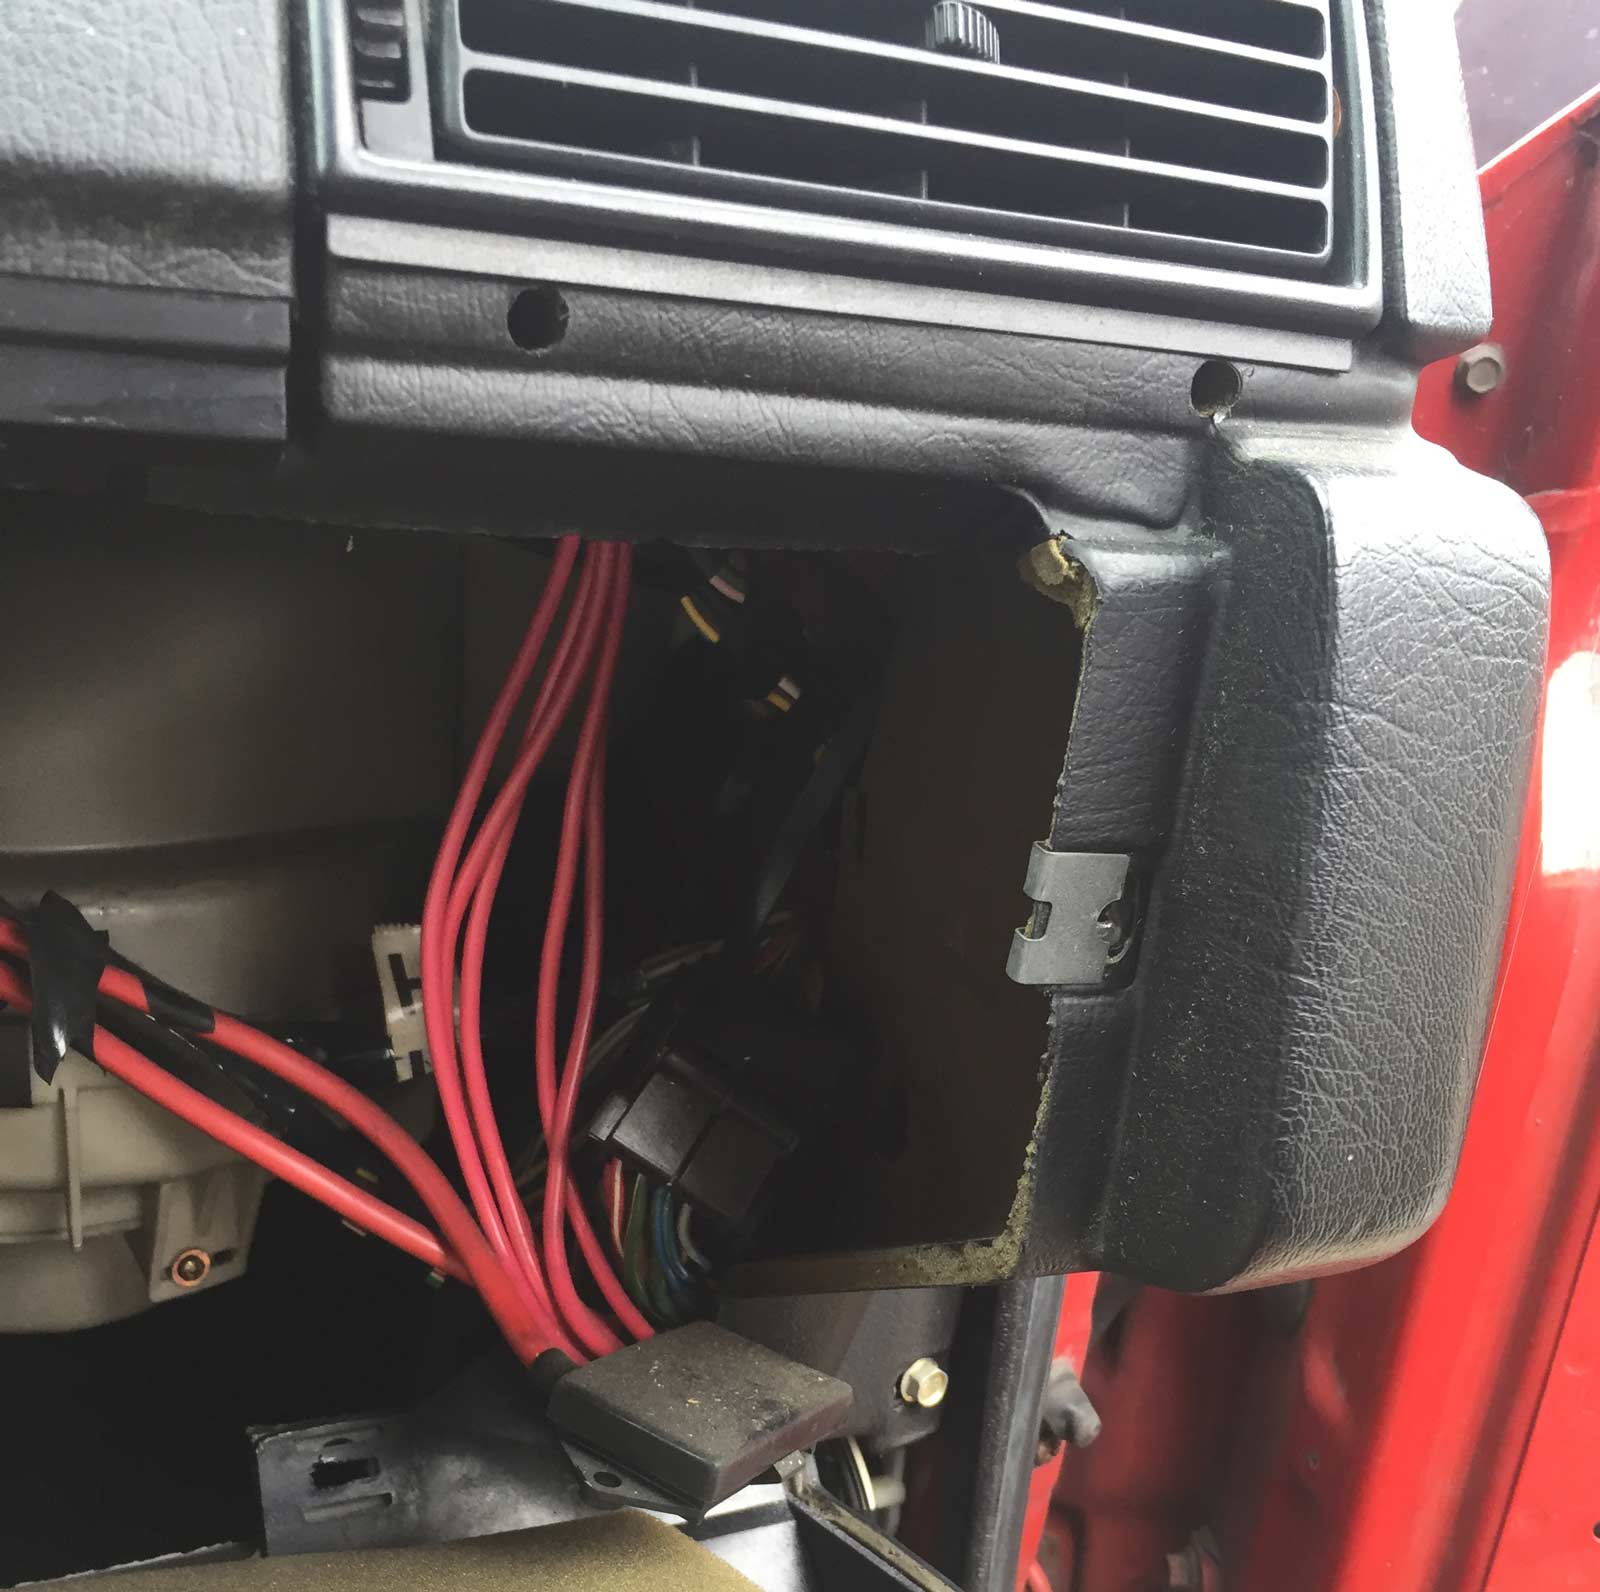 Power Junction Box Inside Volvo 242 Exterior Wiring This Is Where The Located In 700 900 Cars Photo Taken Junk Yard Car Was A 90 92 740